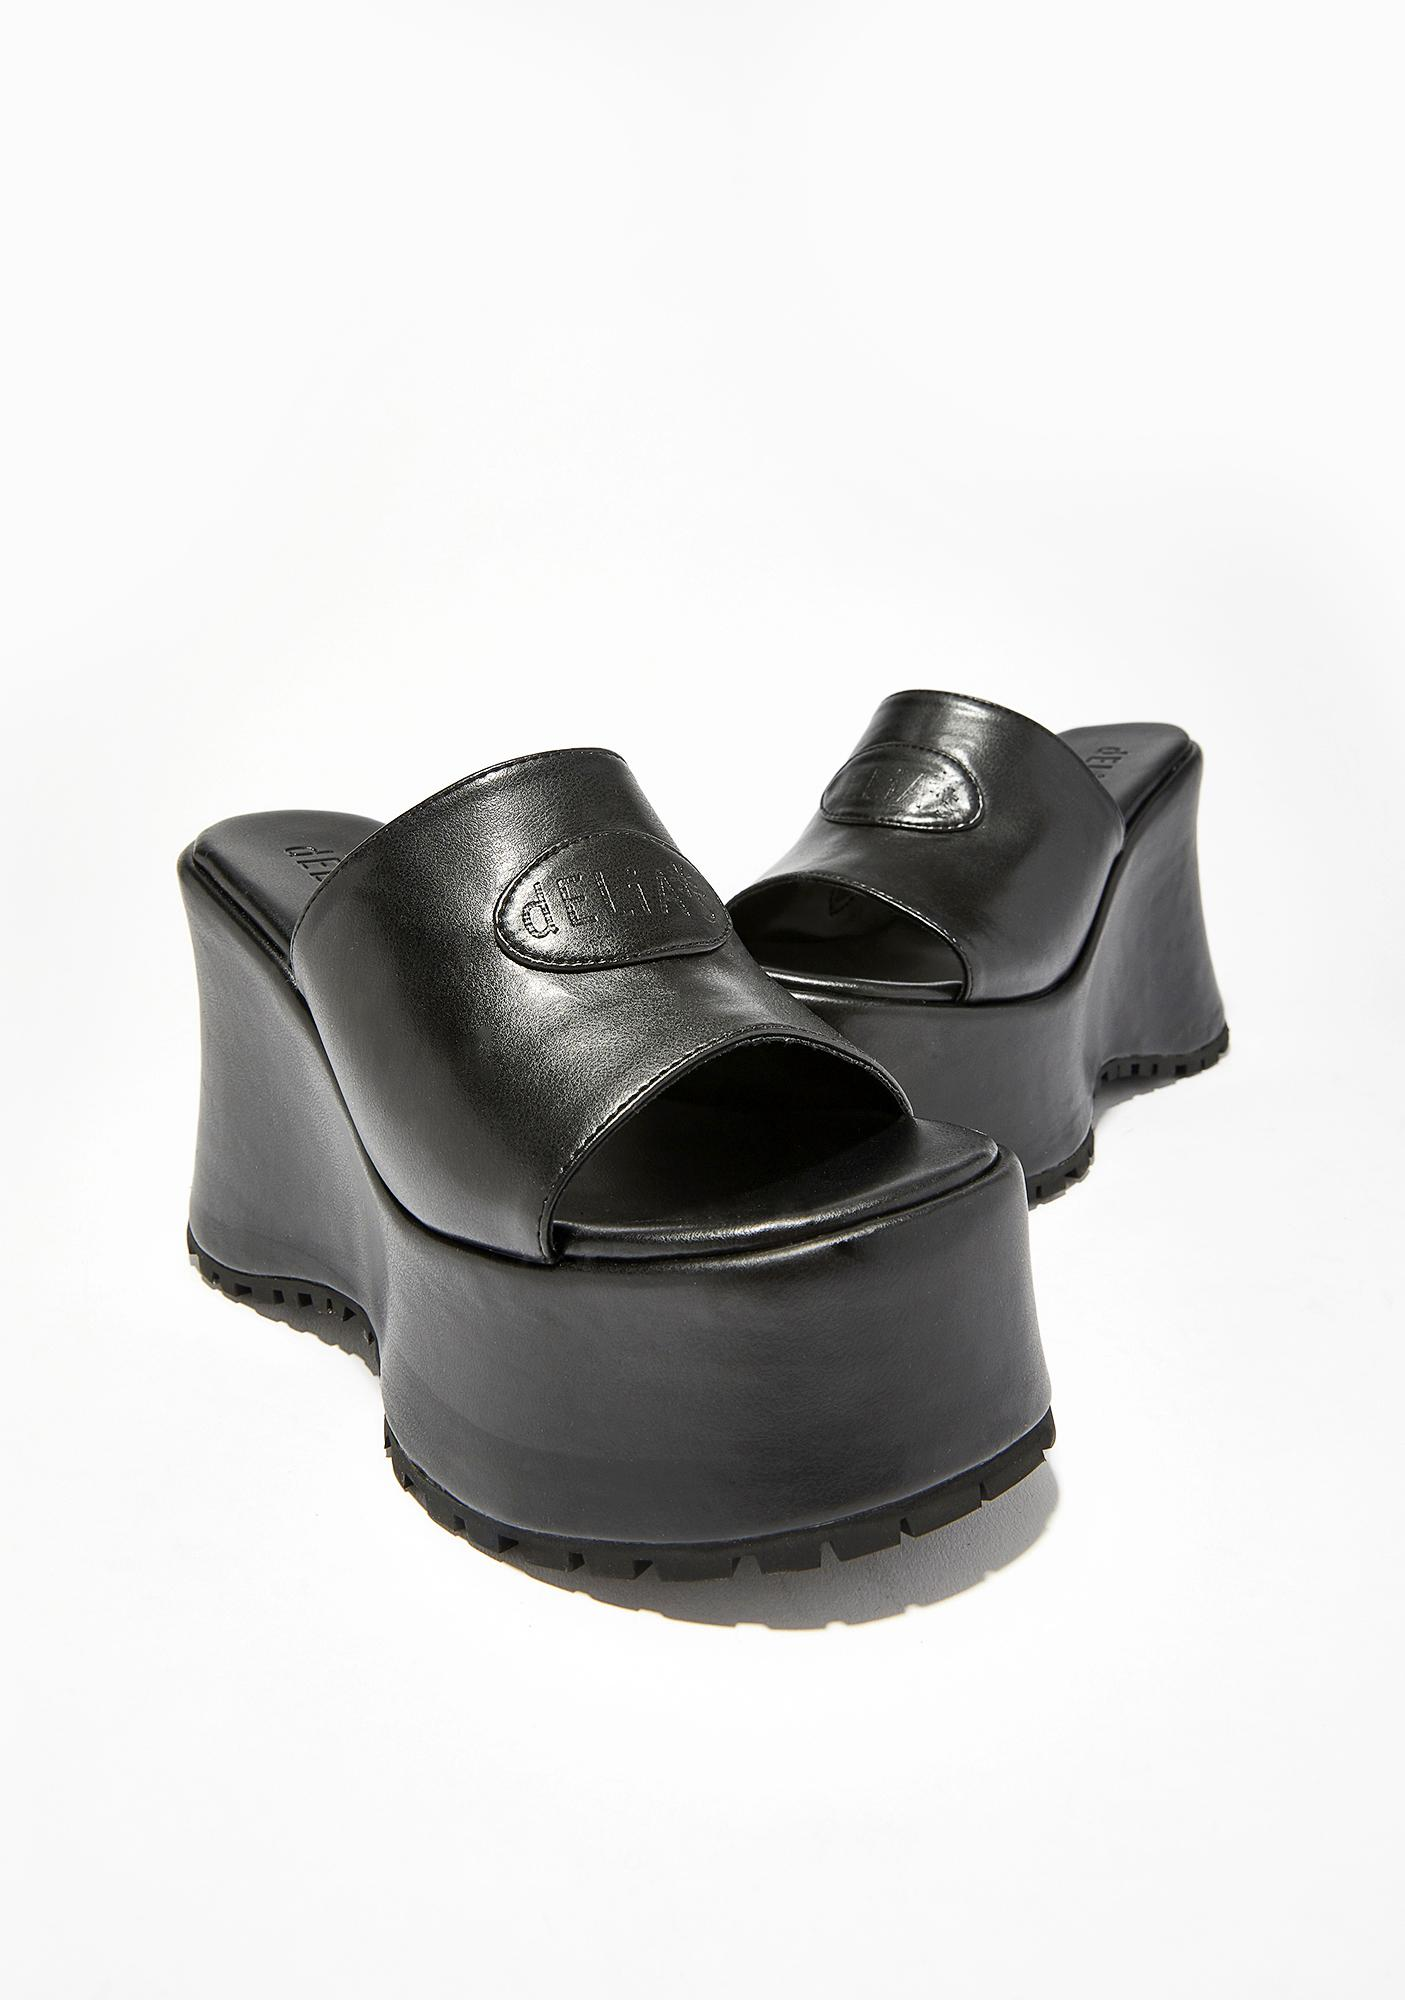 91debf55f7909 Teen Dream Chunky Slides